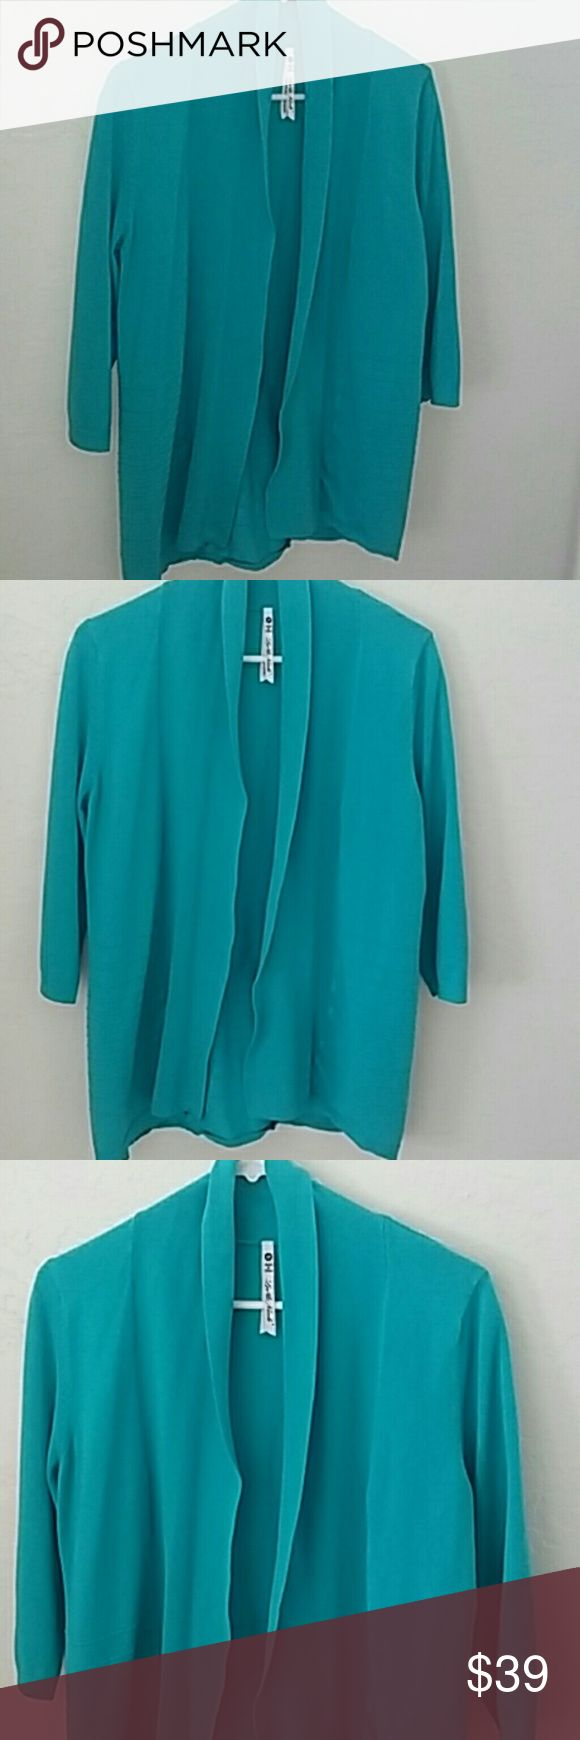 💗CLOSET SALE💗 Turquoise cardigan. .beautiful Cozy turquoise cardigan  Sz M., fits sz L too..very loved condition. .price reflects. Really pretty turquoise color MEASURES APPROX 28 ARMPIT TO ARMPIT X 38  BUNDLE AND SAVE!!! Sweaters Cardigans